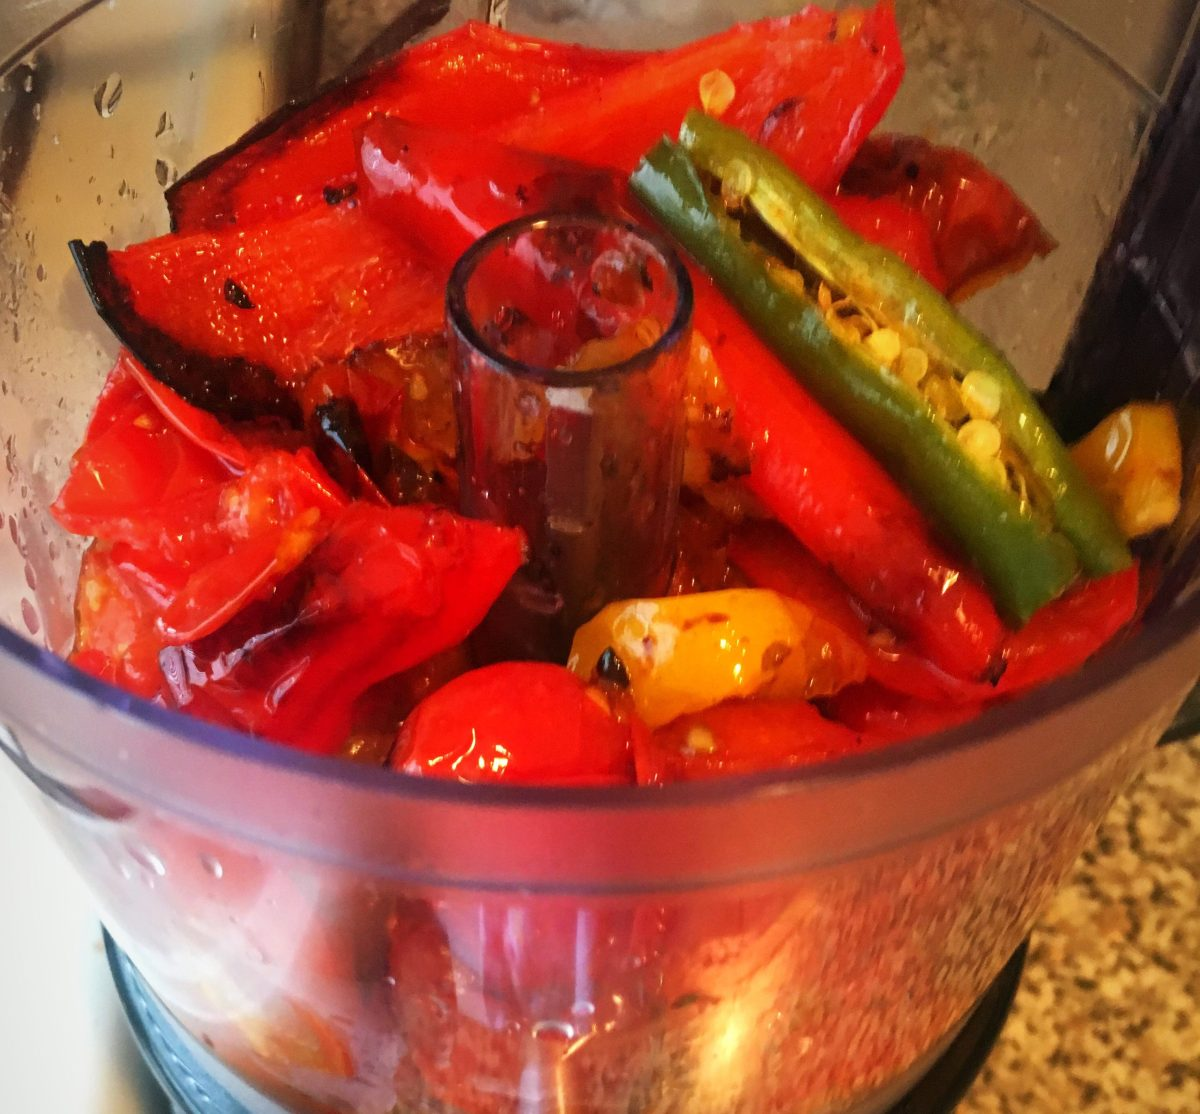 Summer Fun: Travel and Roasting Veggies